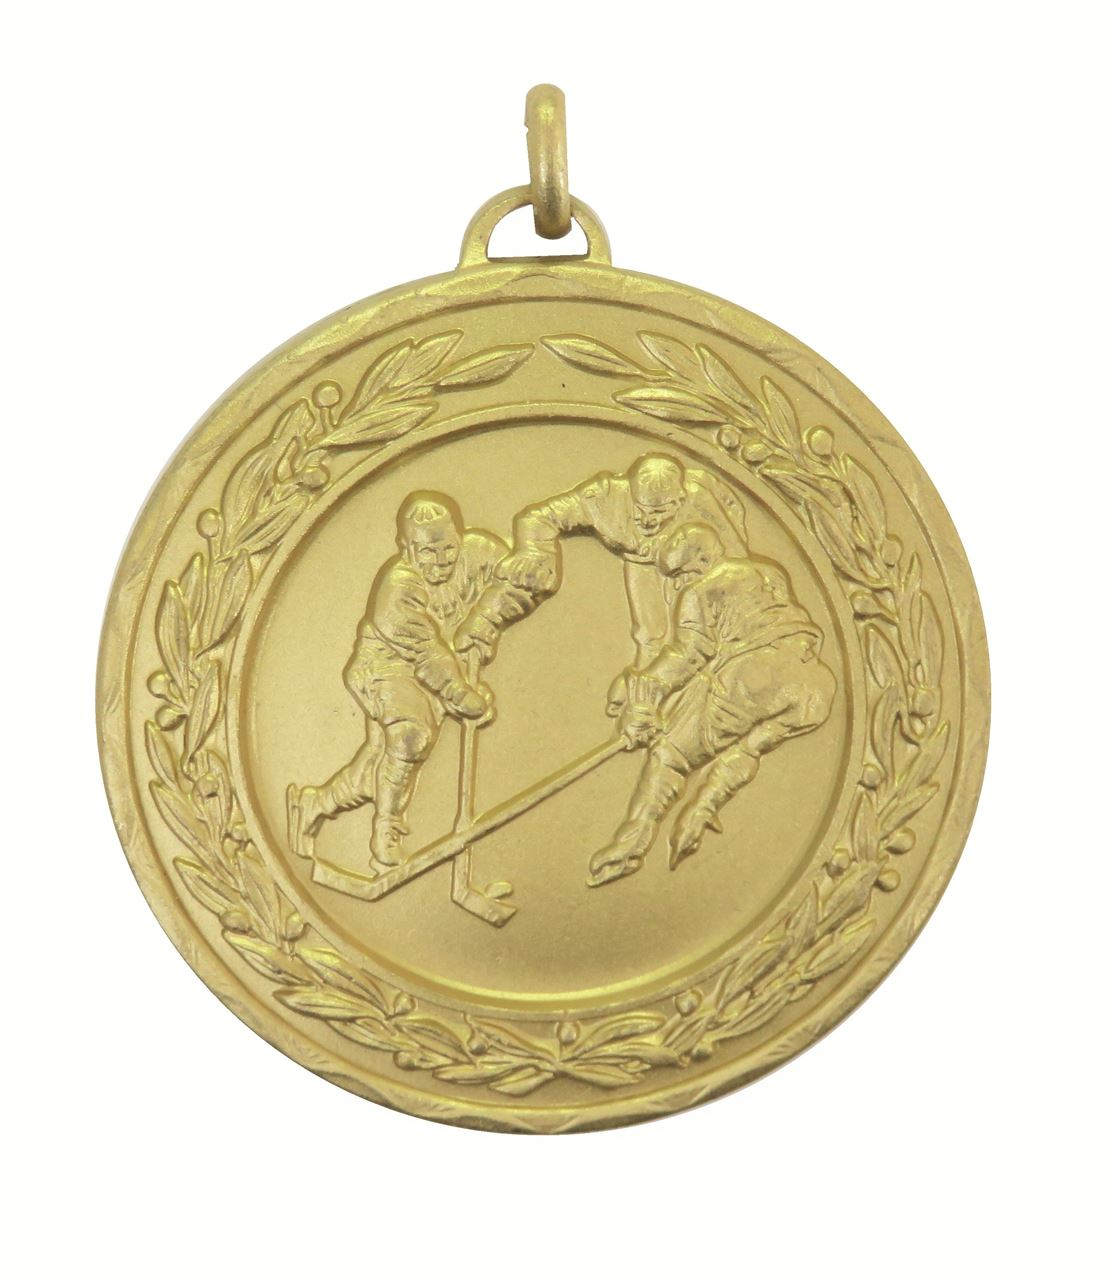 Gold Laurel Economy Ice Hockey Medal (size: 50mm) - 4170E